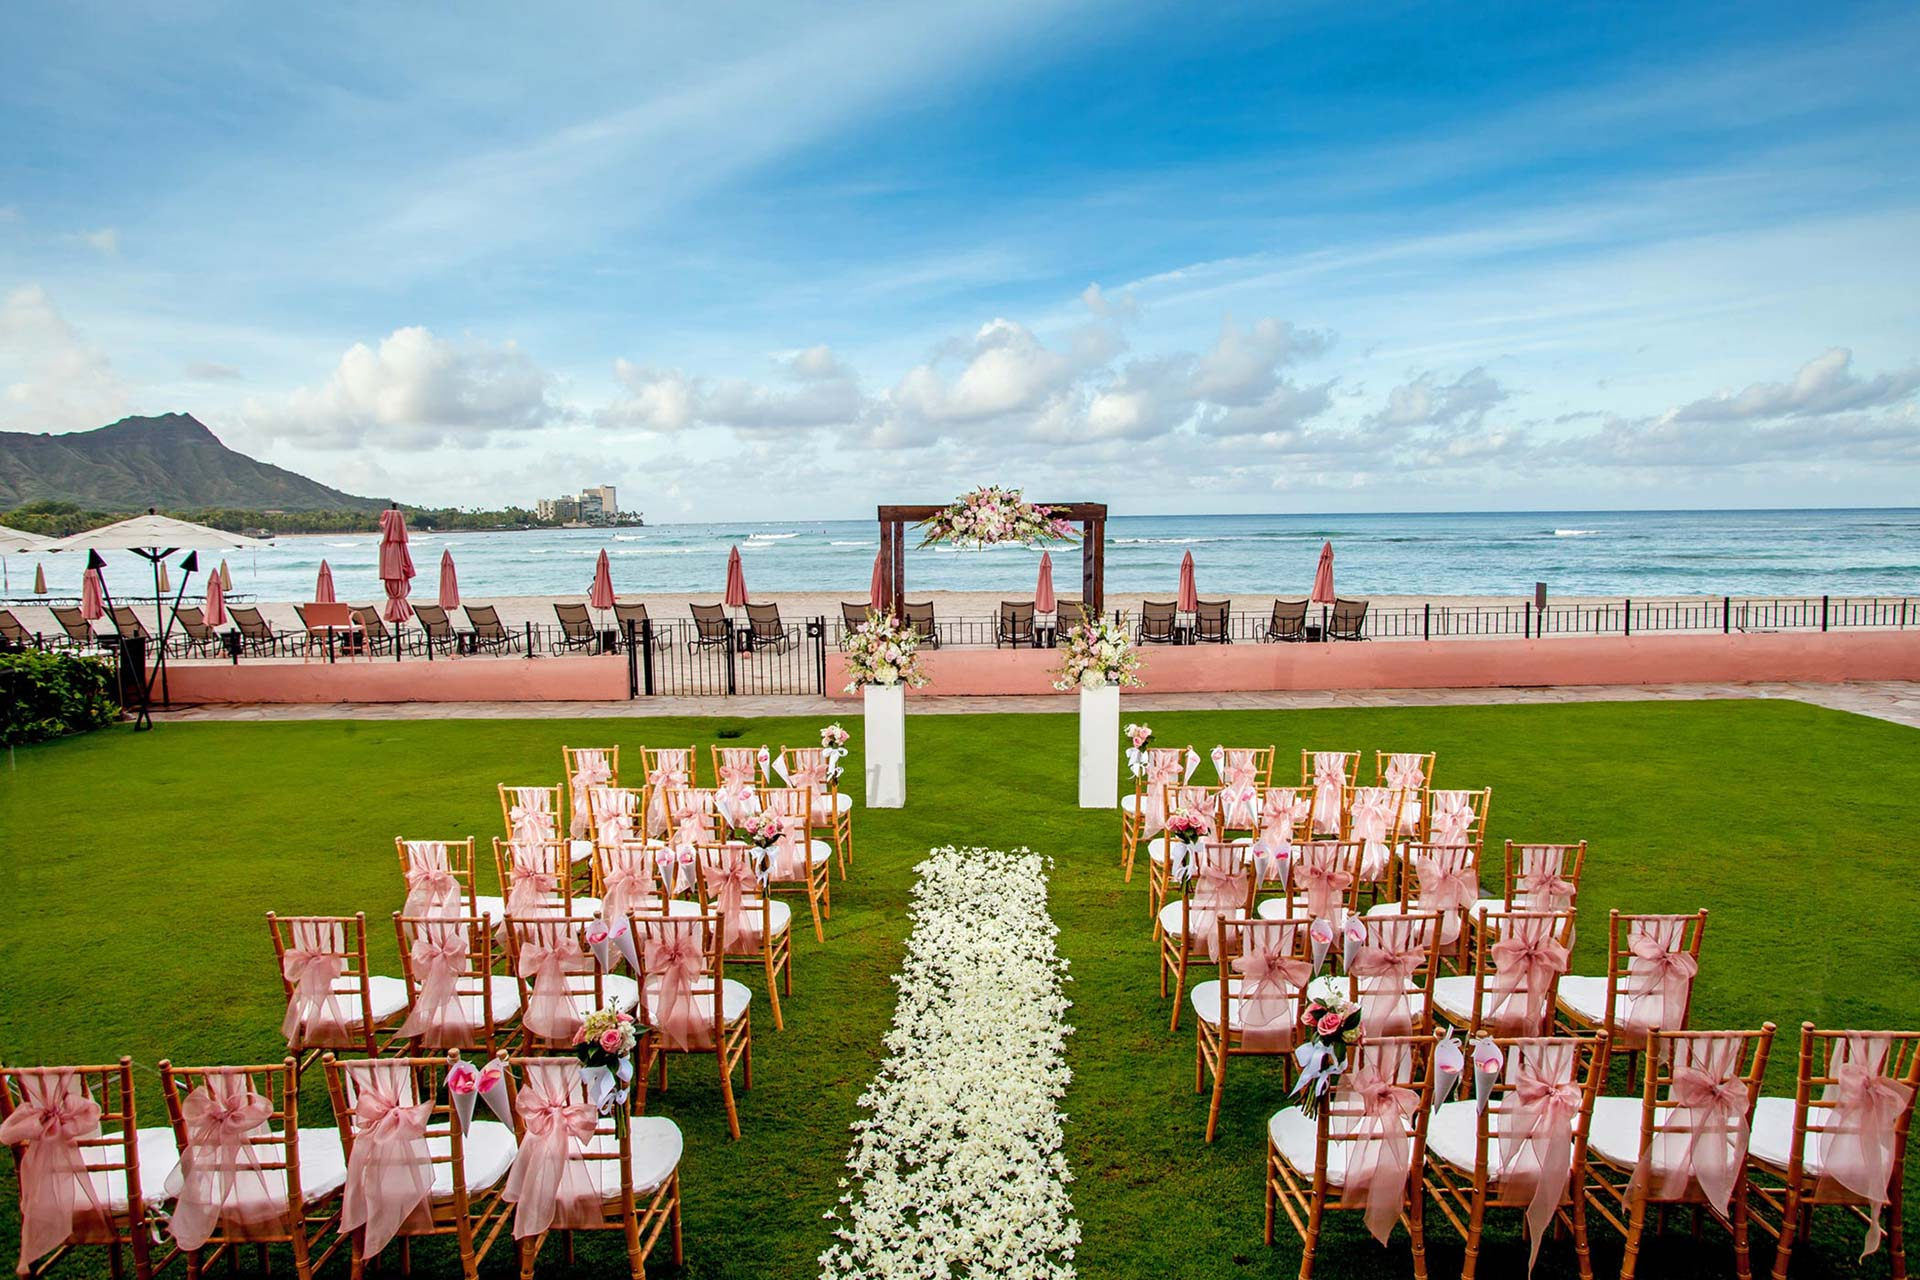 lux376ls-156153-royal-hawaiian-hotel-meetings-Wedding-Ocean-Lawn-Med